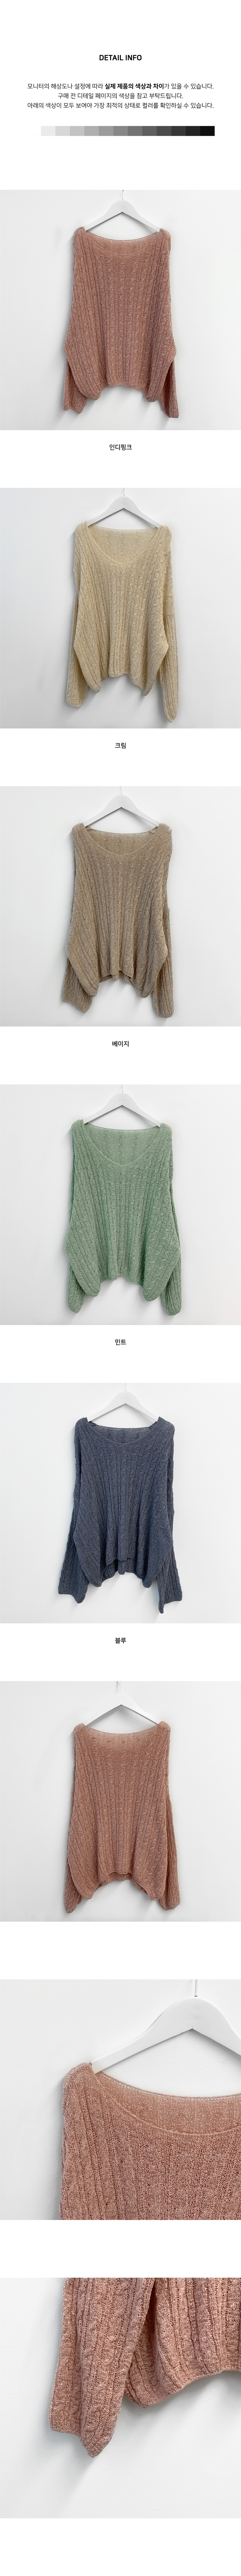 Willie Loose-fit Boat Neck Balloon Twisted Knitwear